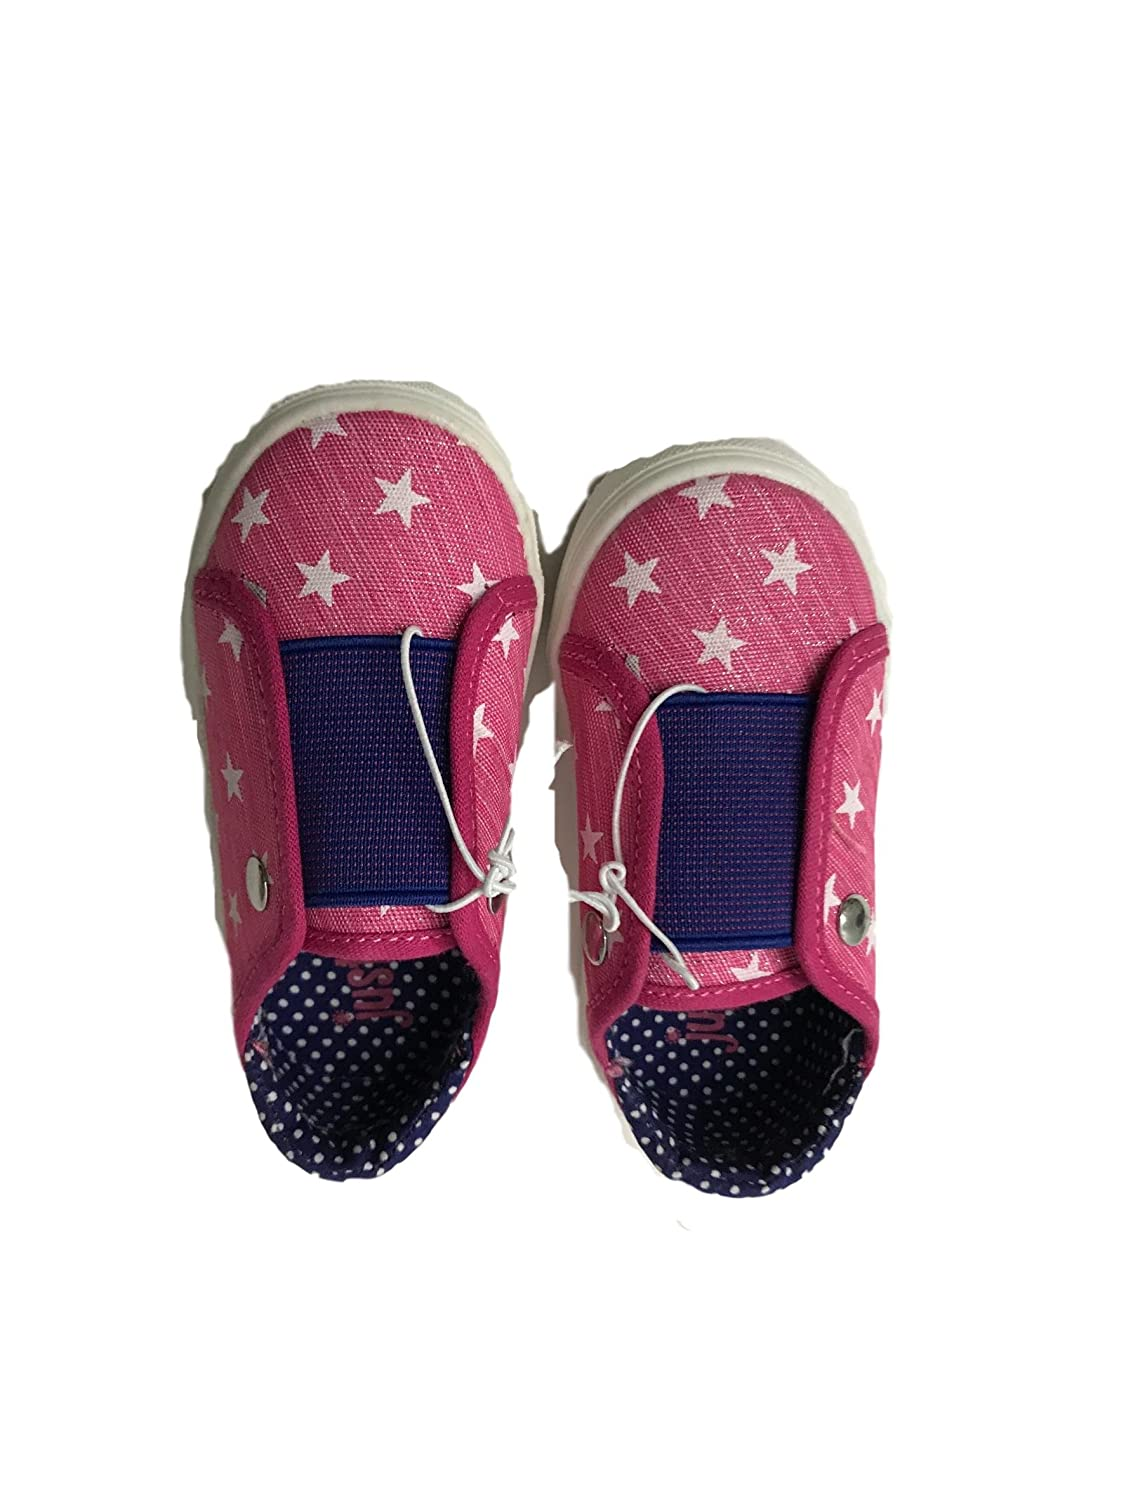 Just Buds Toddler Size 6 Pink Star